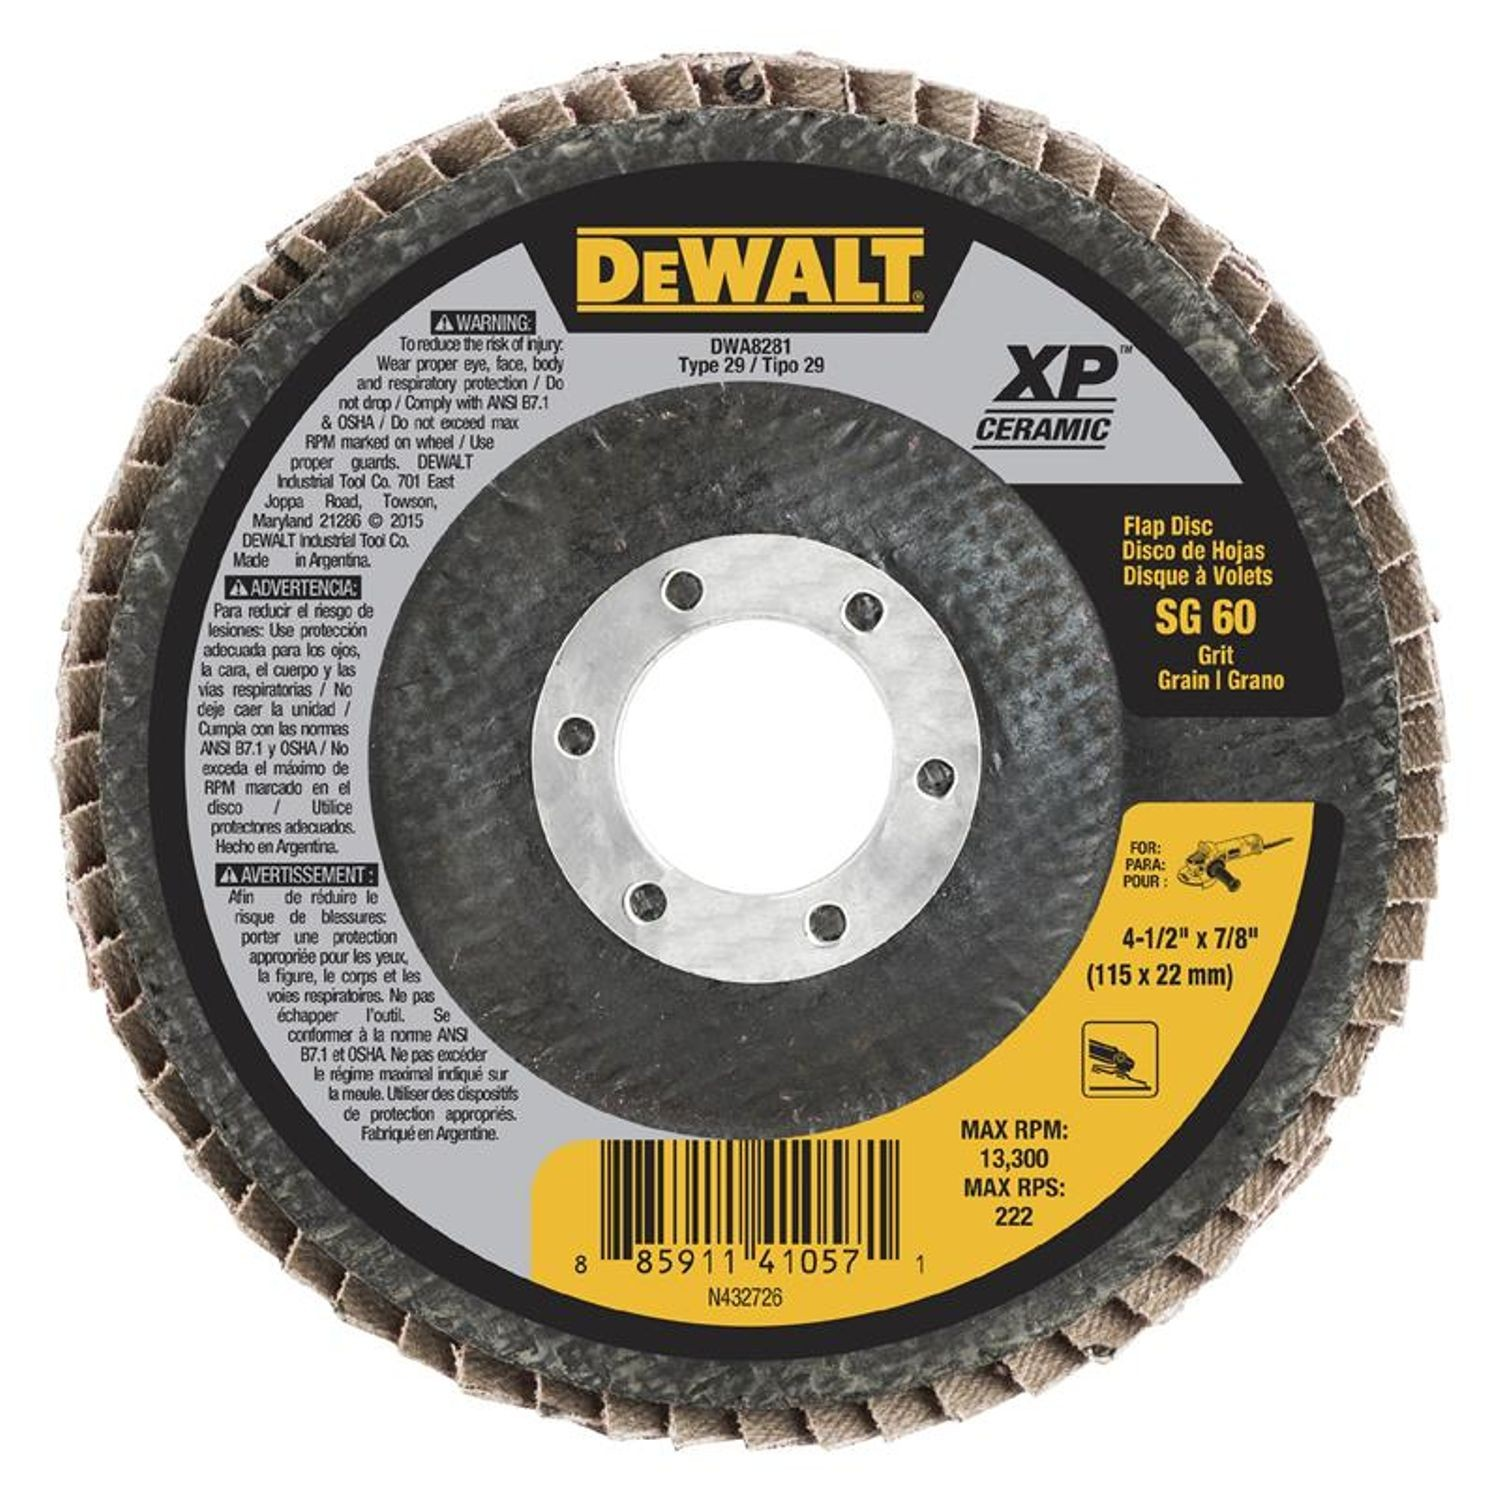 "DeWalt 4-1/2"" Ceramic Flap Disc 60 Grit"